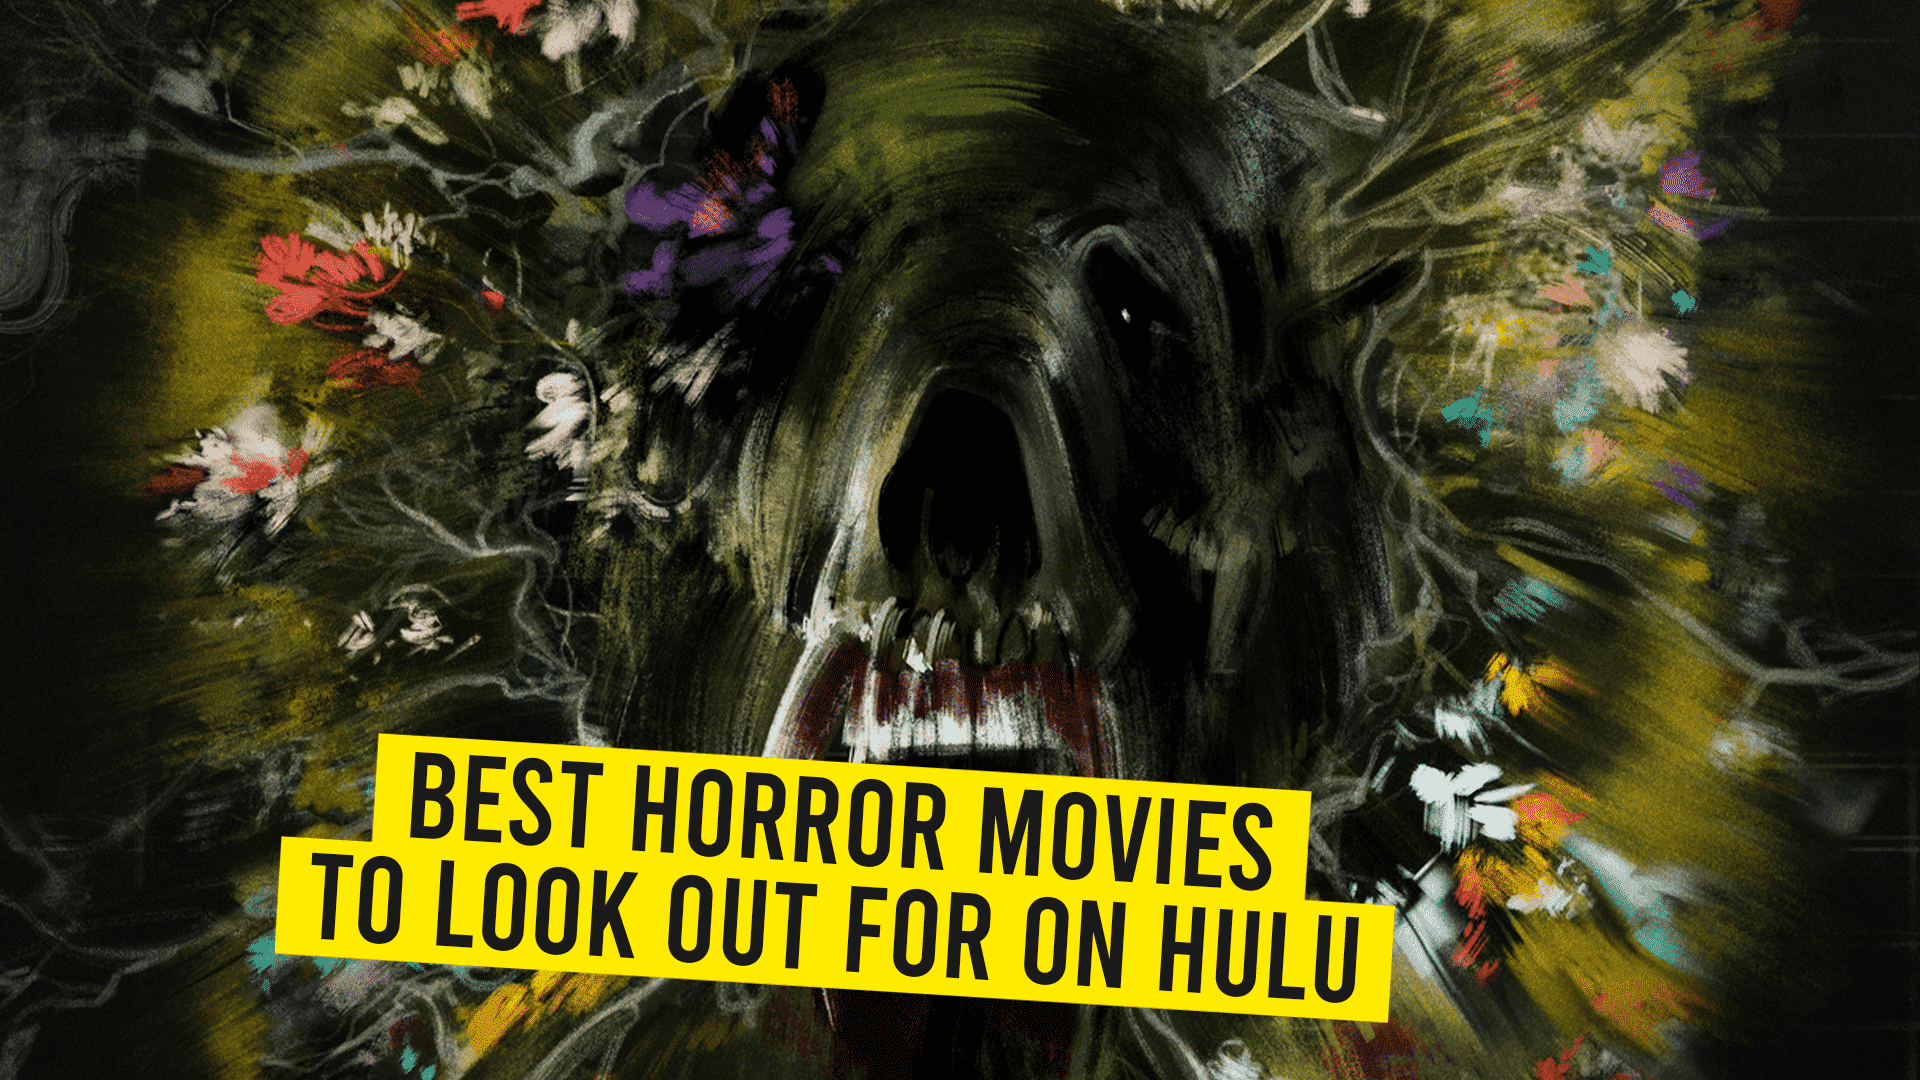 HULU's scary movie collection